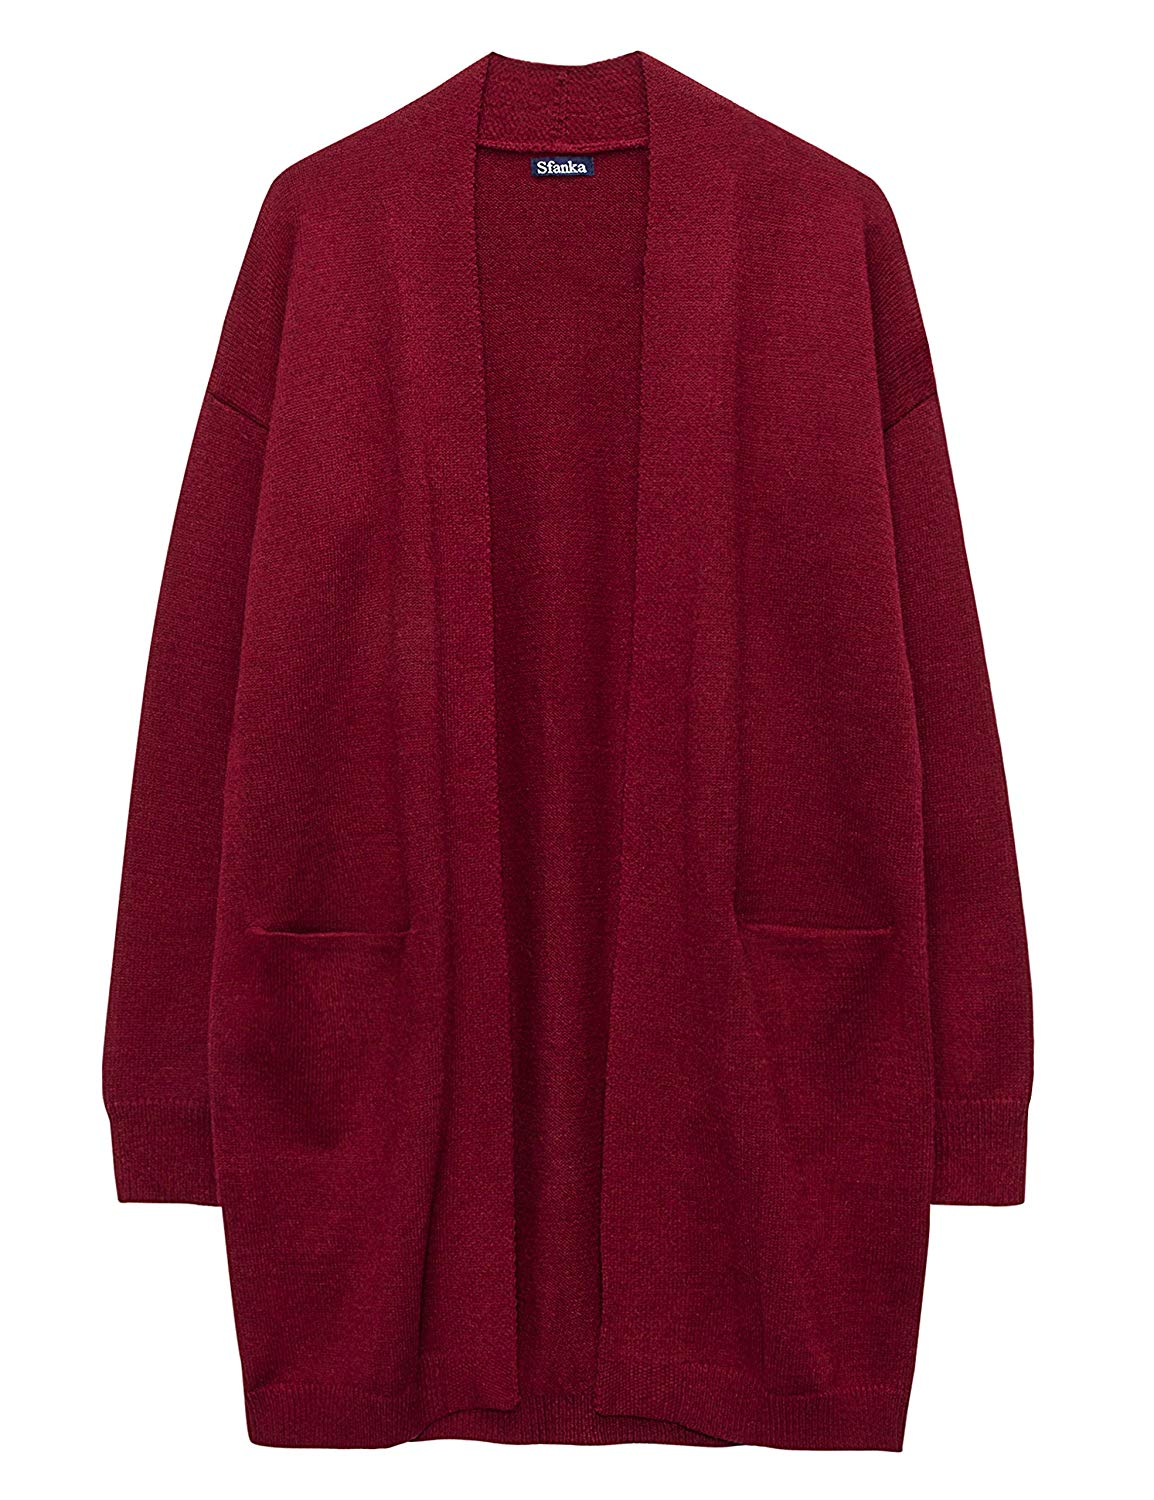 219adaf89cedc0 Get Quotations · Sfanka Women s Cardigan Sweaters Long Sleeve Cable Knit  Open Front Chunky Sweatercoat